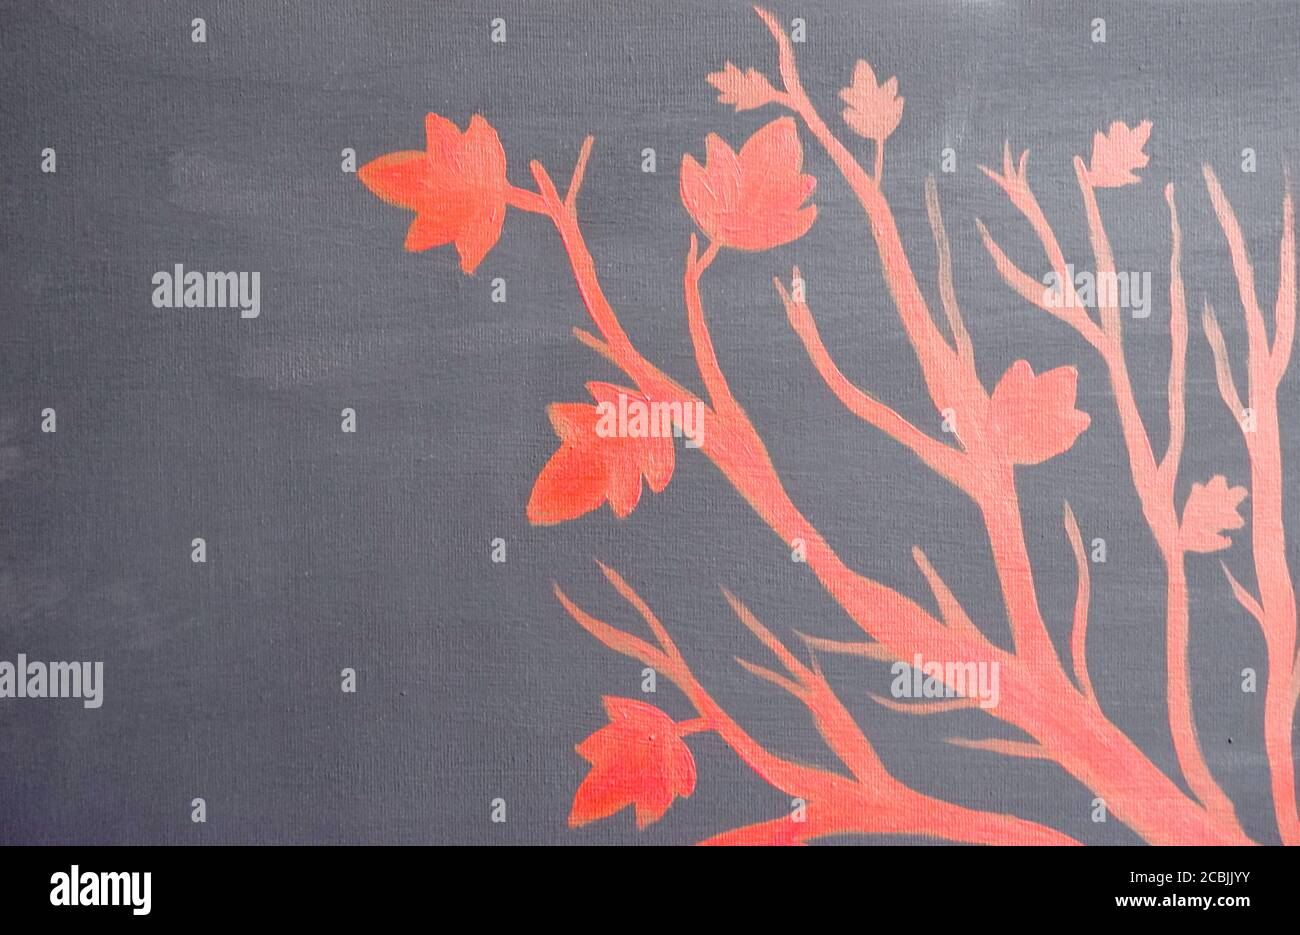 Botany Branches And Leaves Acrylic Painting On Canvas In Black And Red Hand Drawn Art Flat Lay Overlay Background Botanical Artwork Minimal Stock Photo Alamy